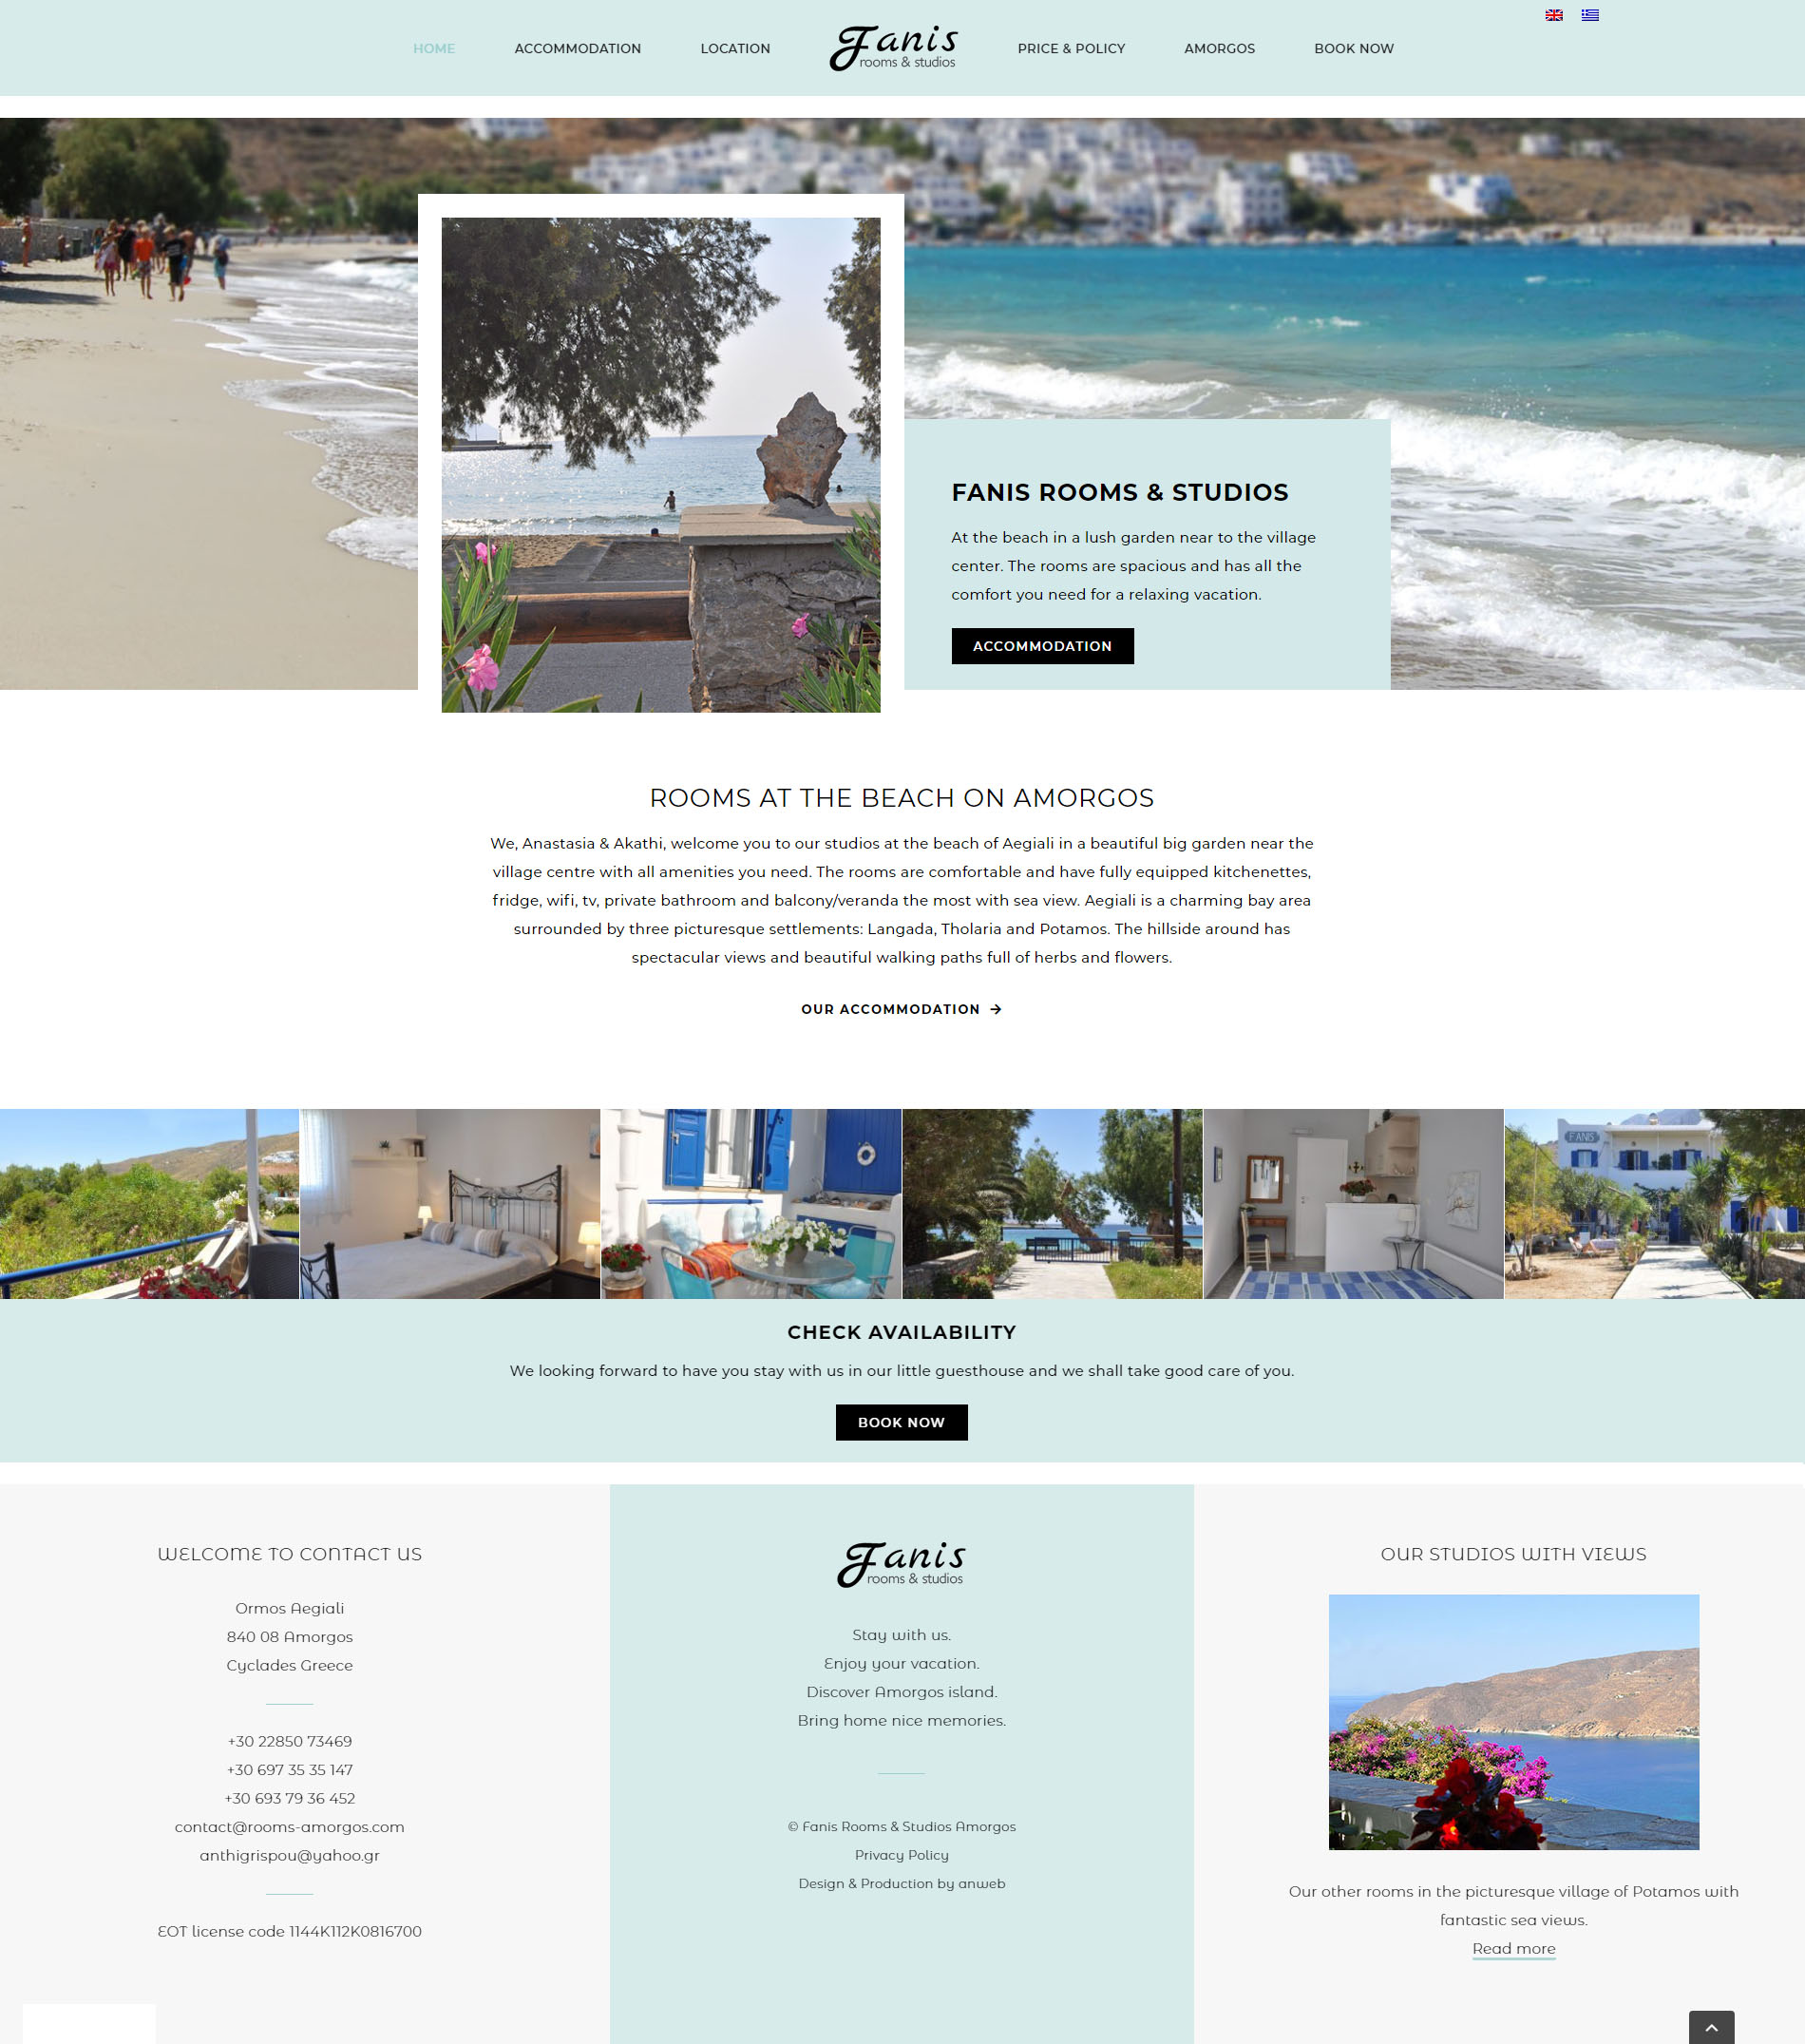 Rooms and Studios Amorgos anweb design